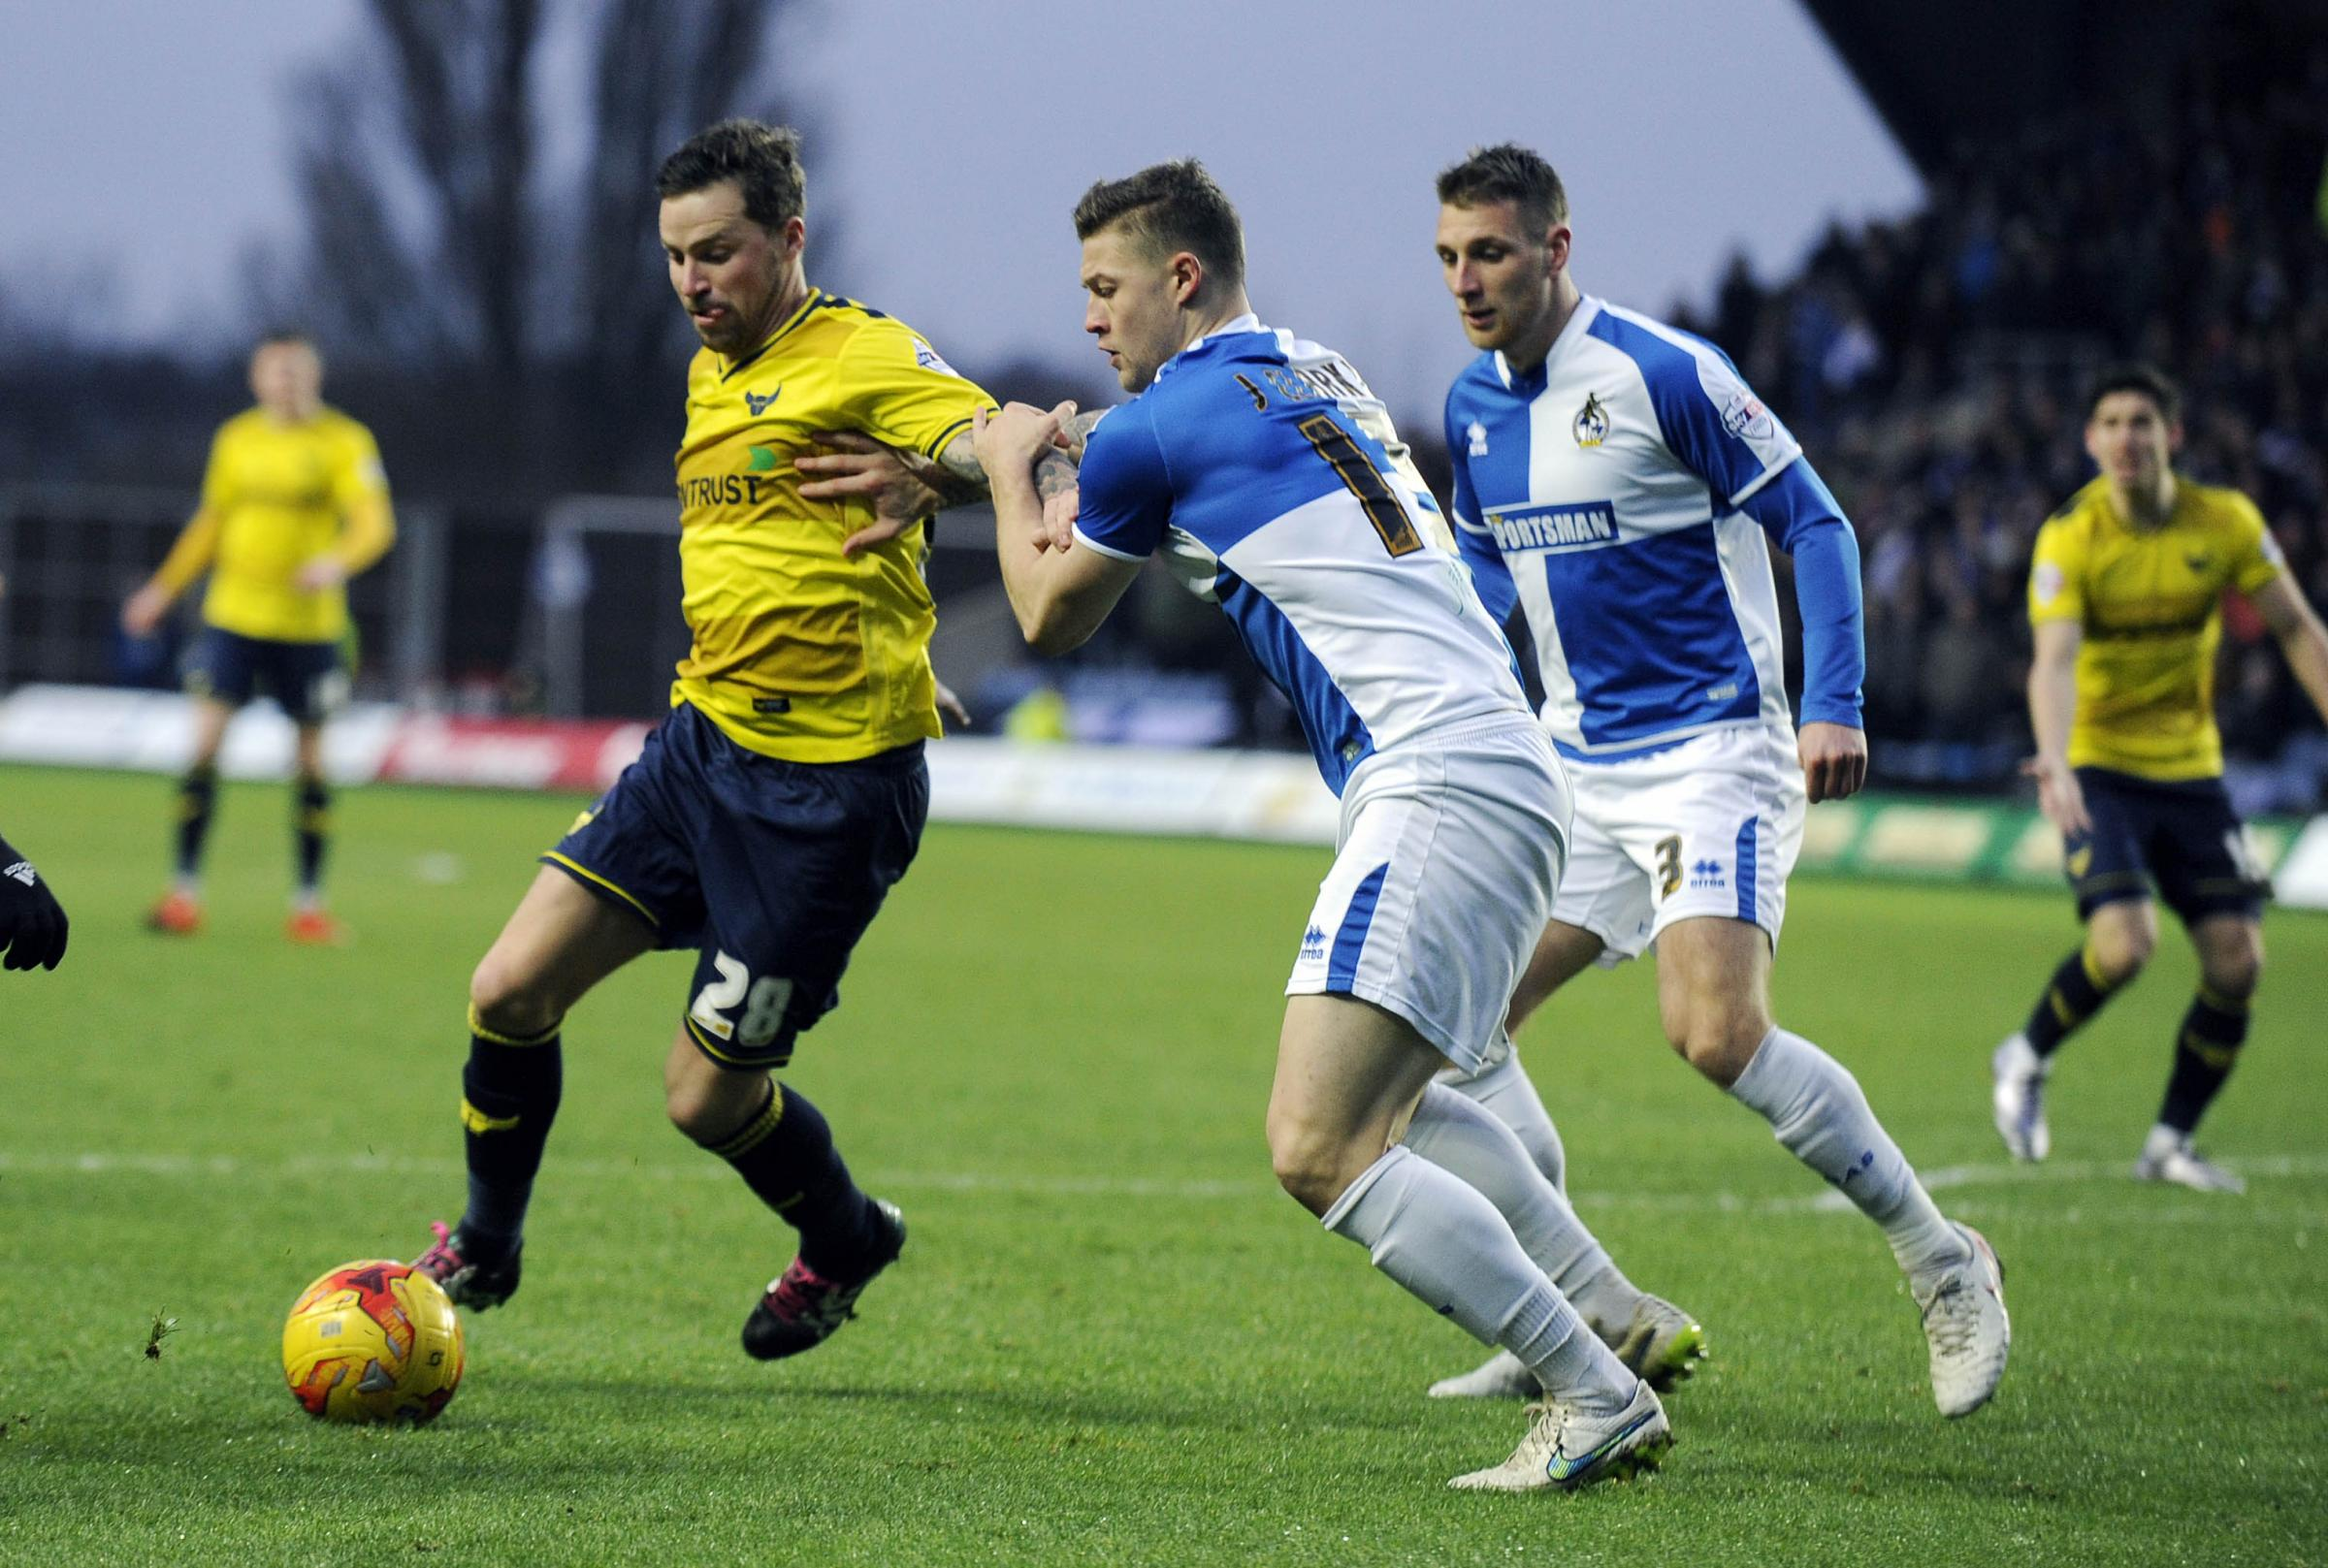 Chris Maguire in action for Oxford United on Sunday, which was the final appearance in his loan spell Picture: David Fleming